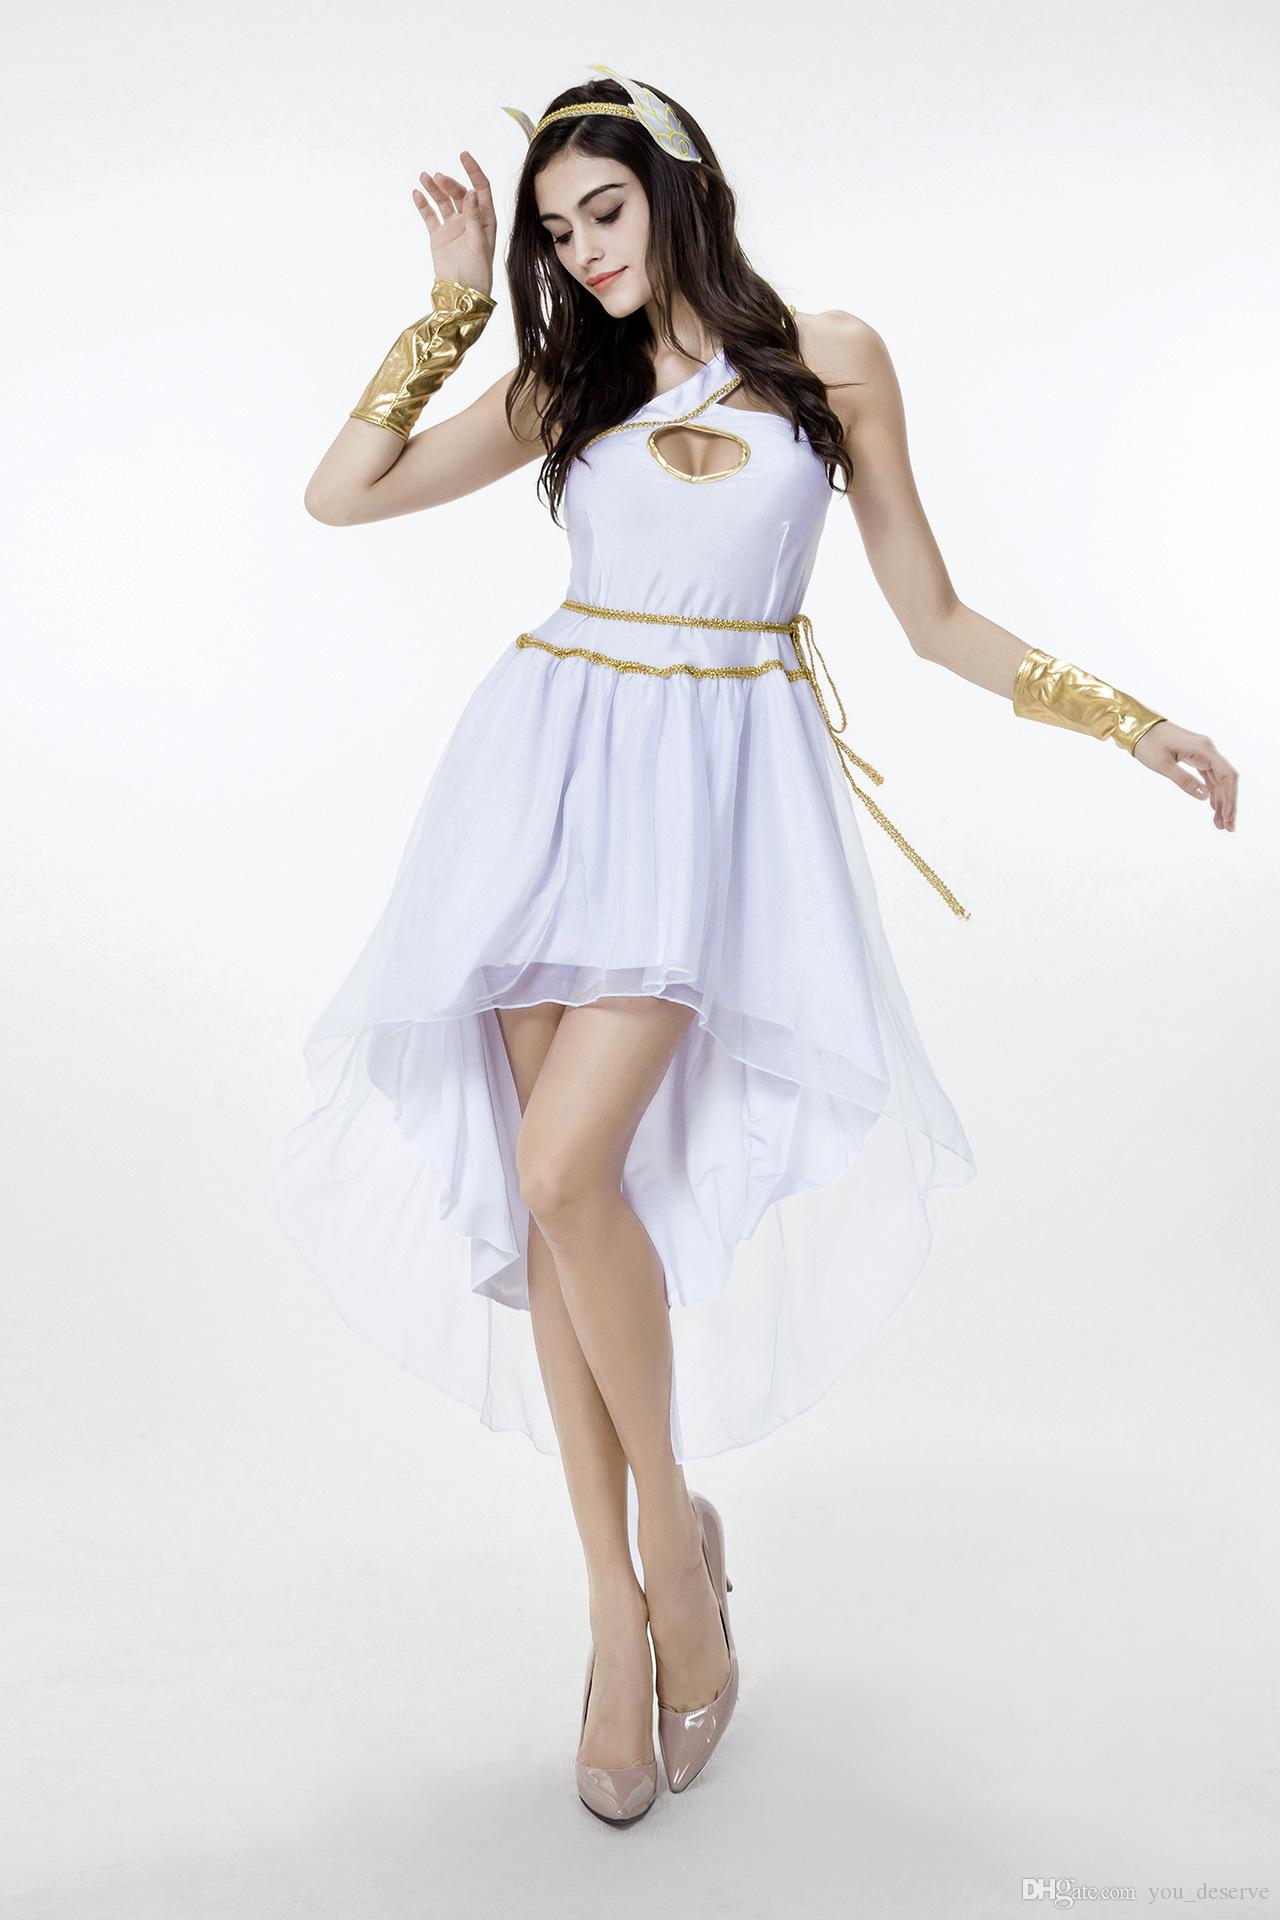 fd26eb4fa80 2018 New Arrival Adult Women Greek Goddess Dress White Sexy Cosplay  Halloween Costumes Stage Performance Clothing Hot Selling Original Group  Costumes Group ...